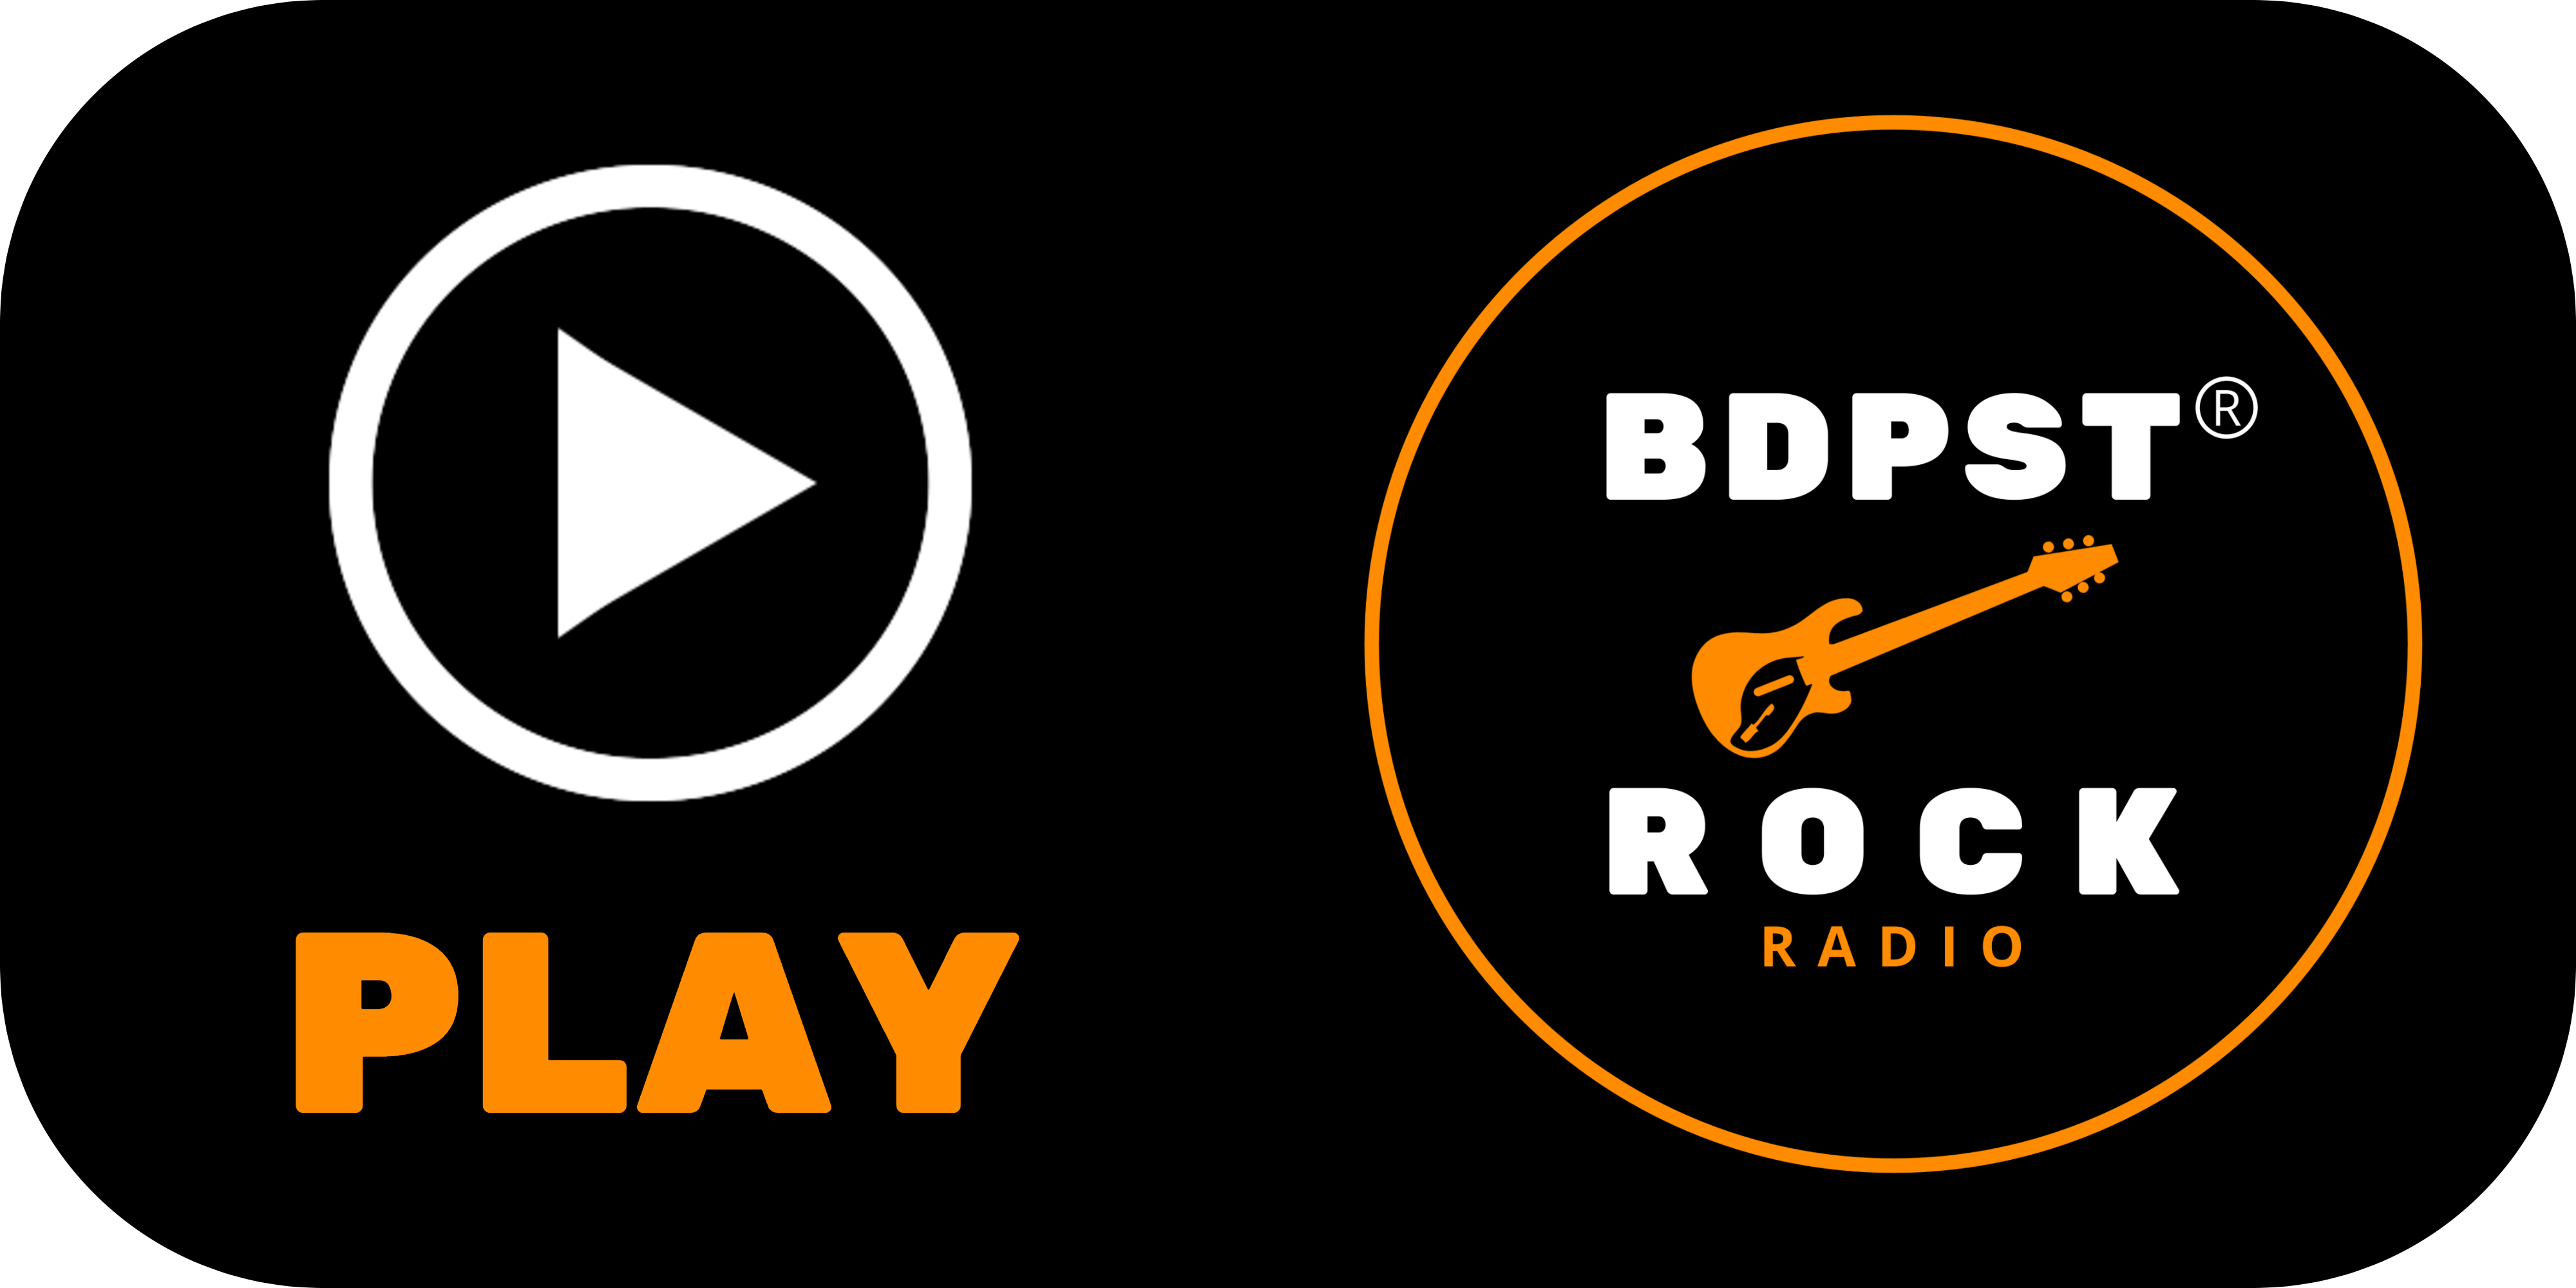 BDPST ROCK play